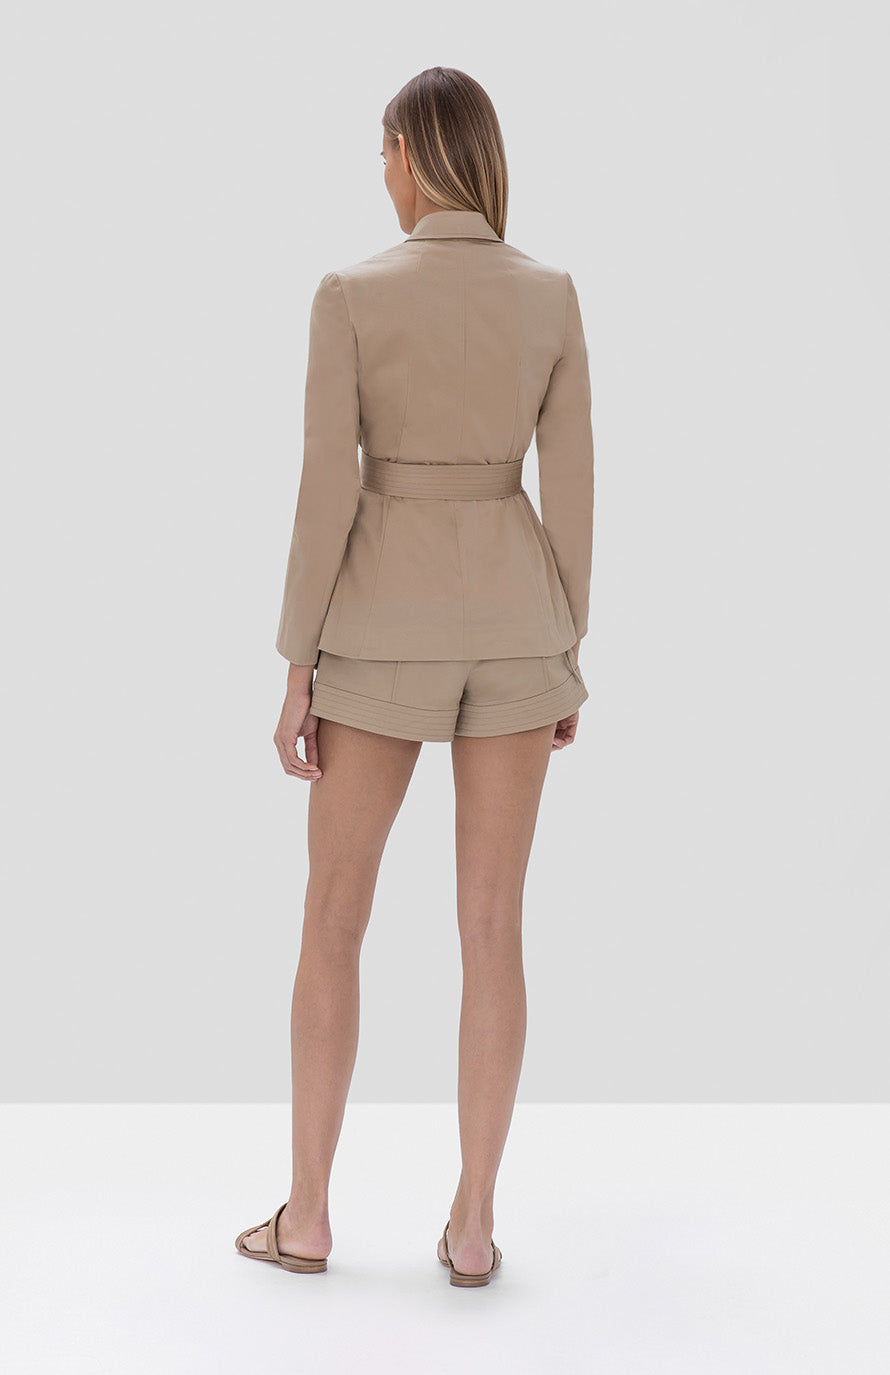 Elka Jacket Winnick Shorts Tan - Rear View